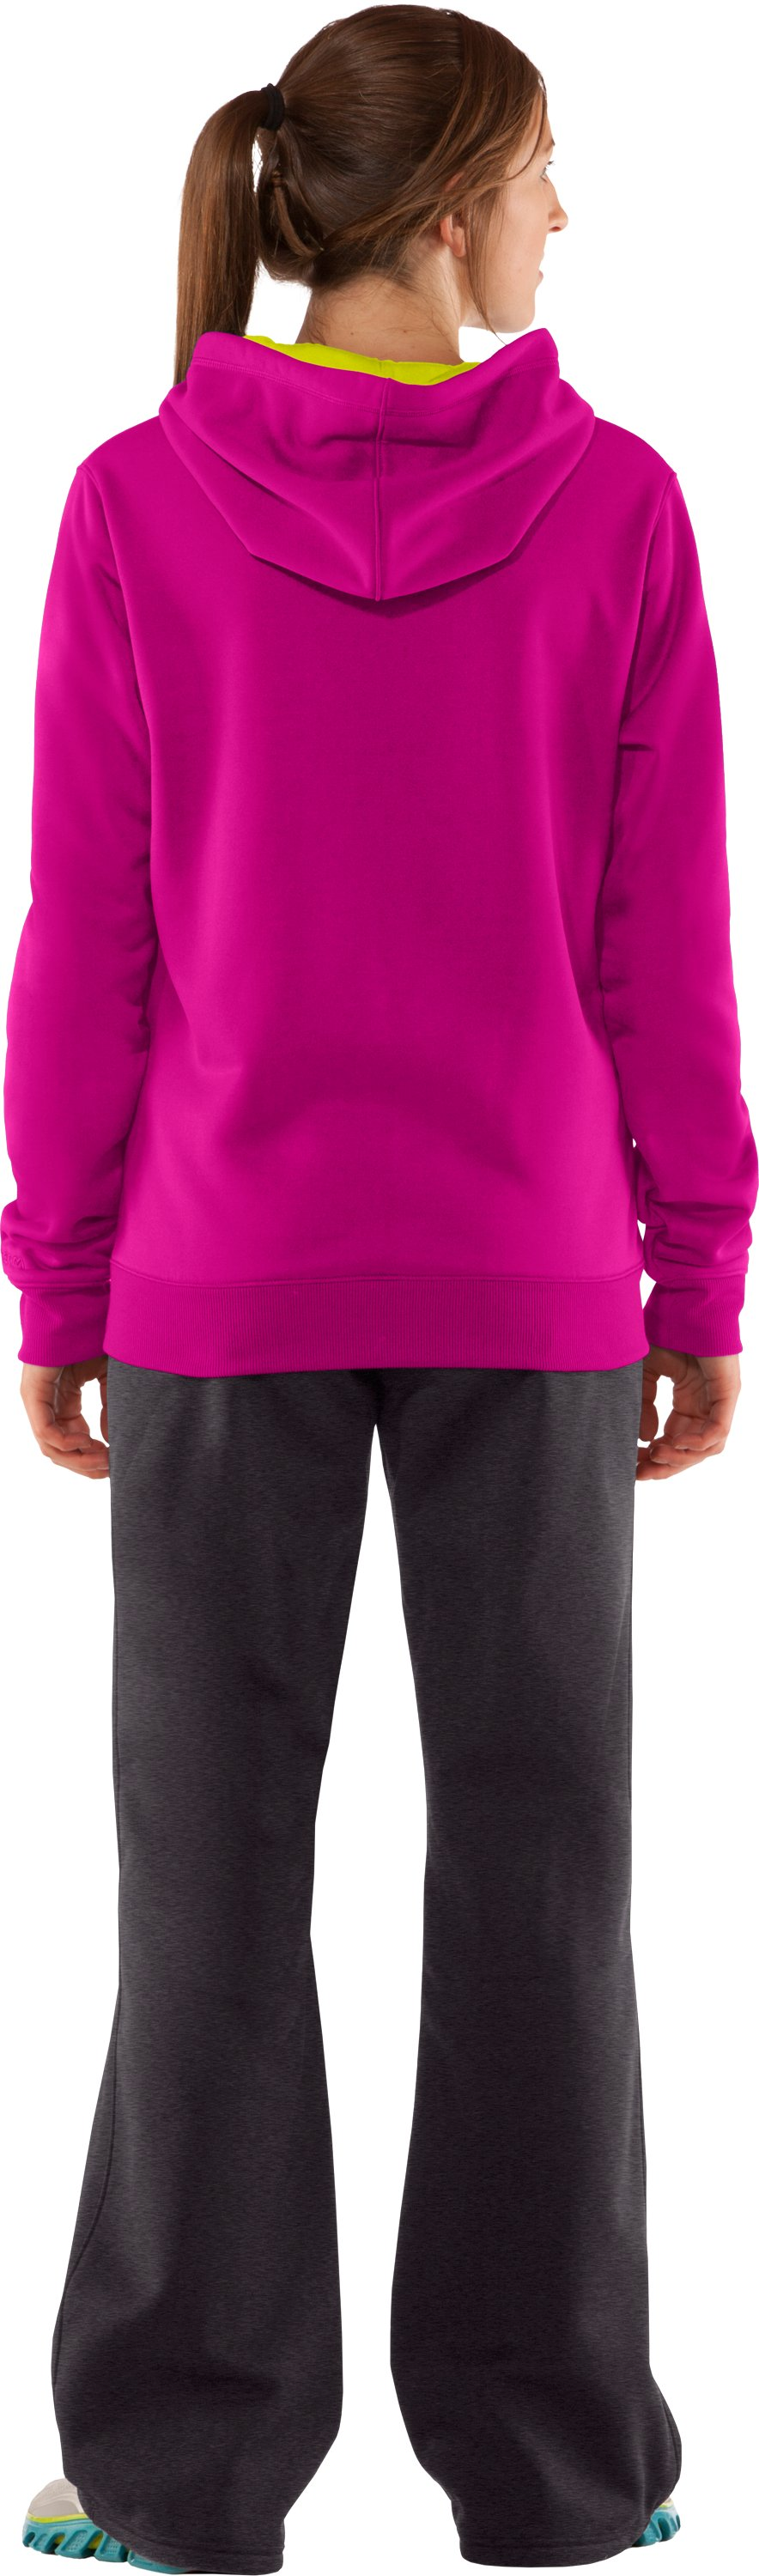 Women's Armour® Fleece Storm Big Logo Hoodie, Tropic Pink, Back